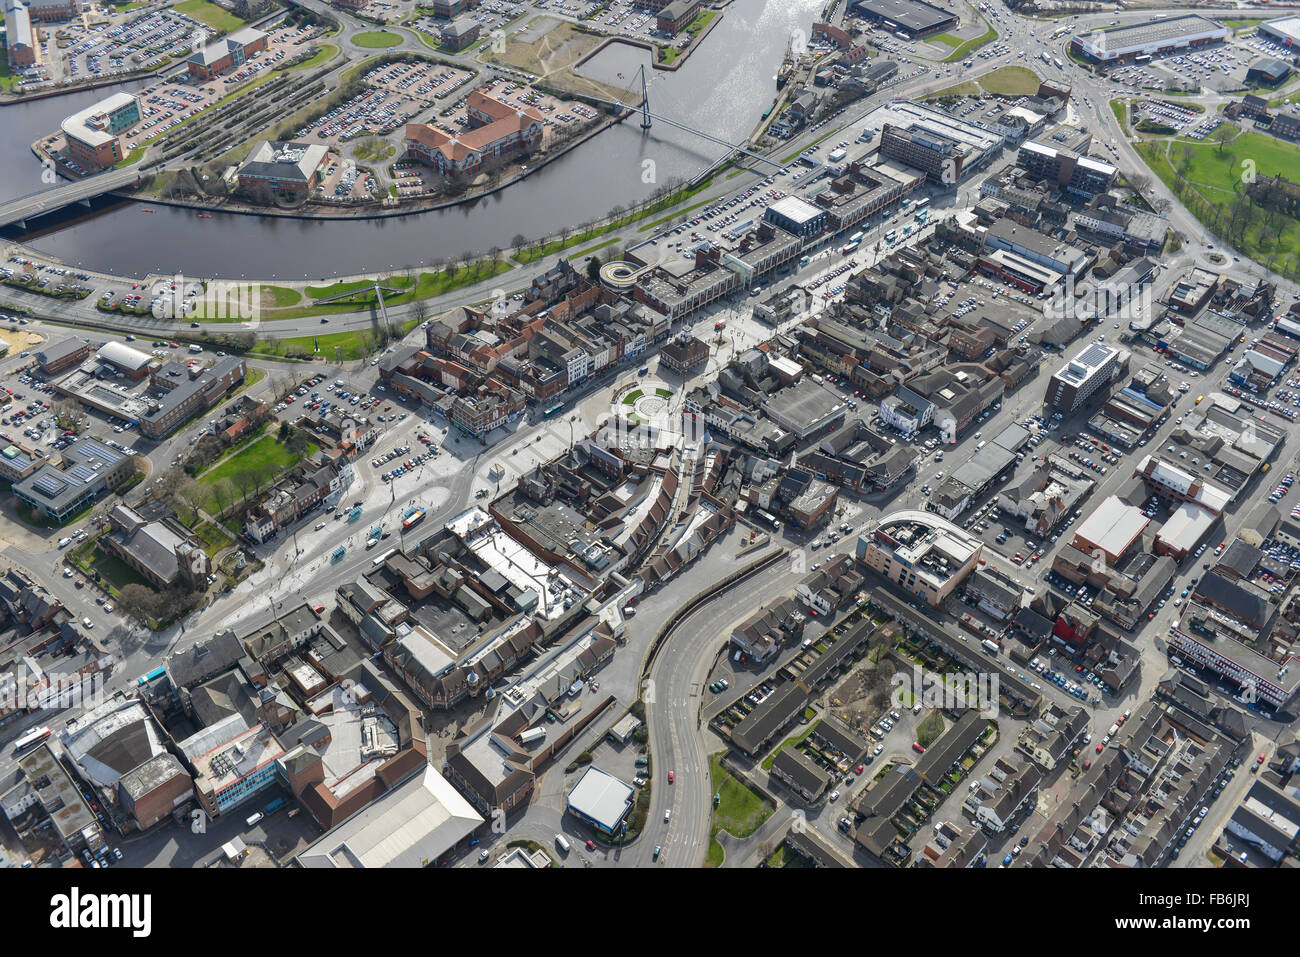 An aerial view of the town centre and shopping precinct area of Stockton on Tees - Stock Image